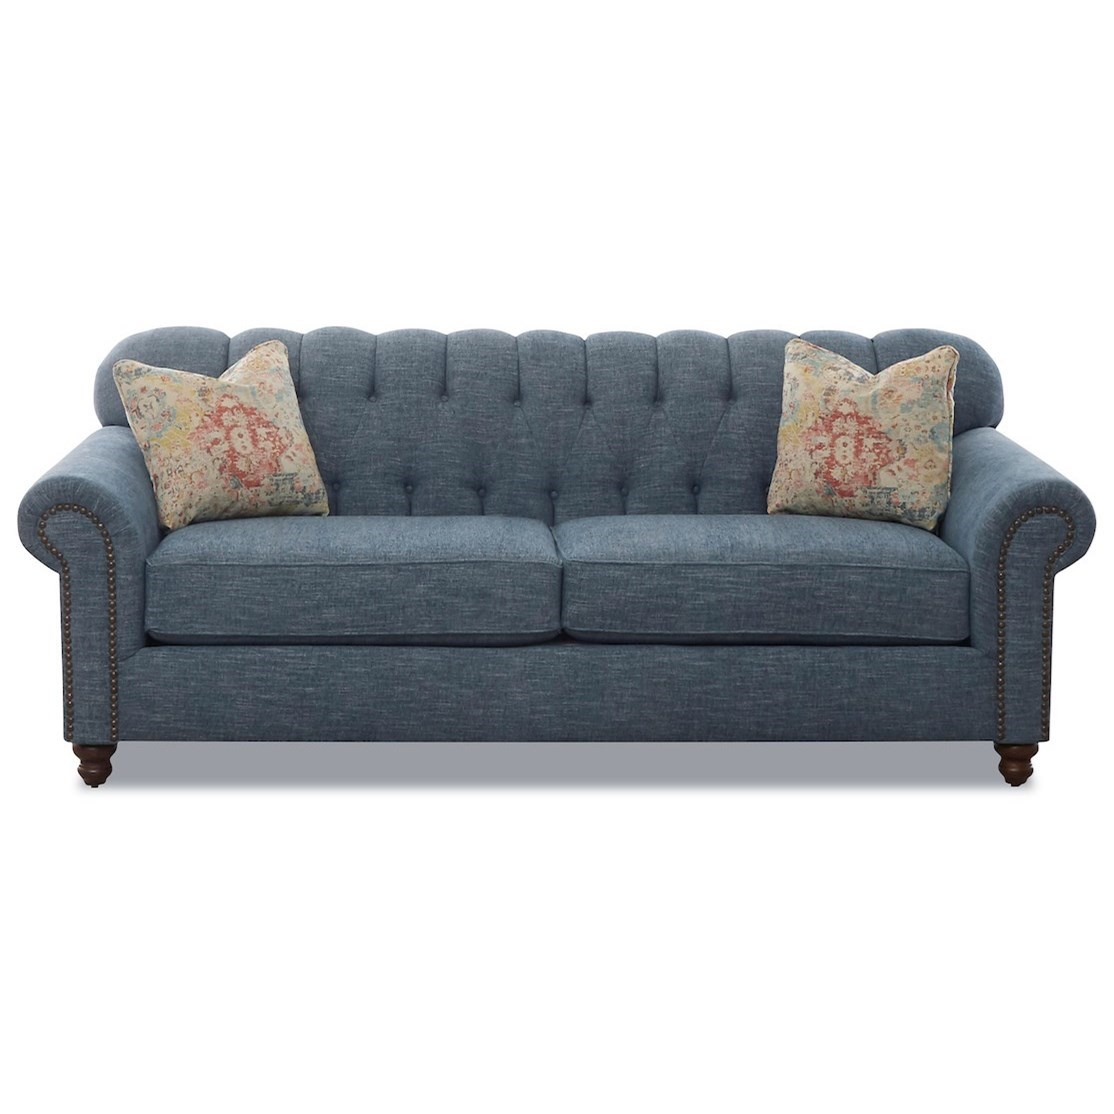 Sinclair Traditional Stationary Sofa by Klaussner at Johnny Janosik